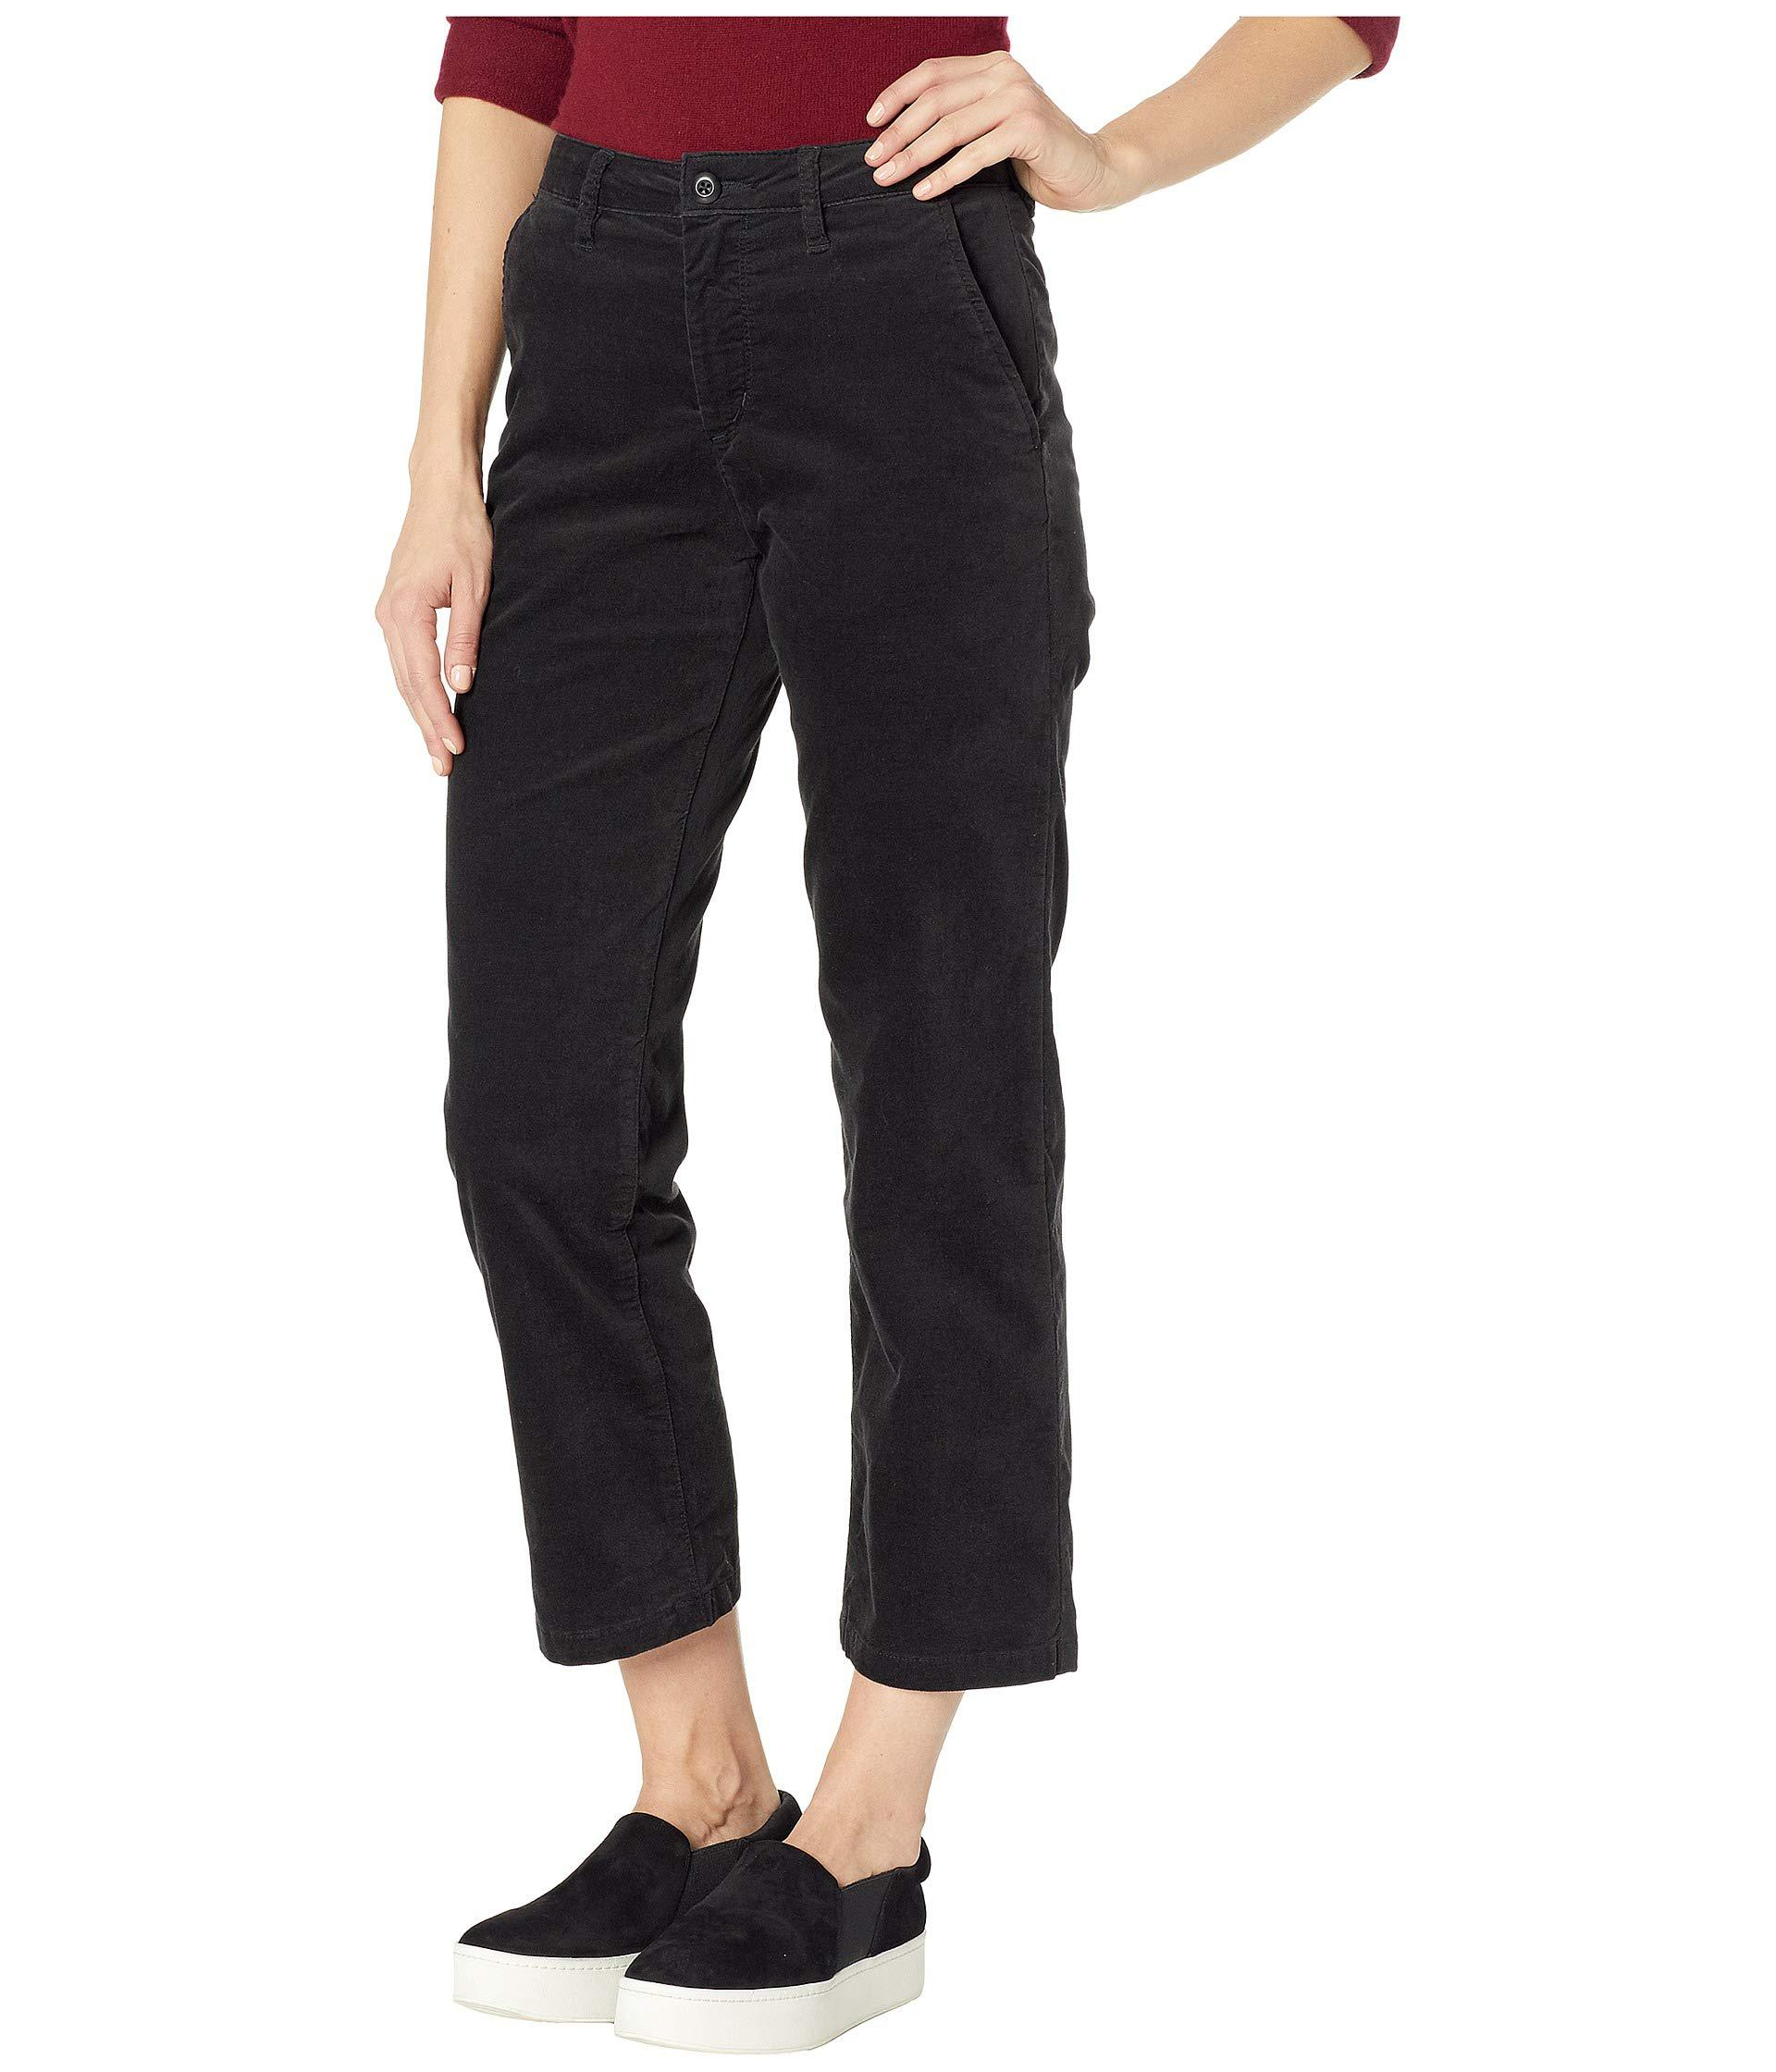 5faa1031cdf8 Lyst - Vans Harlo Pants (black) Women s Casual Pants in Black